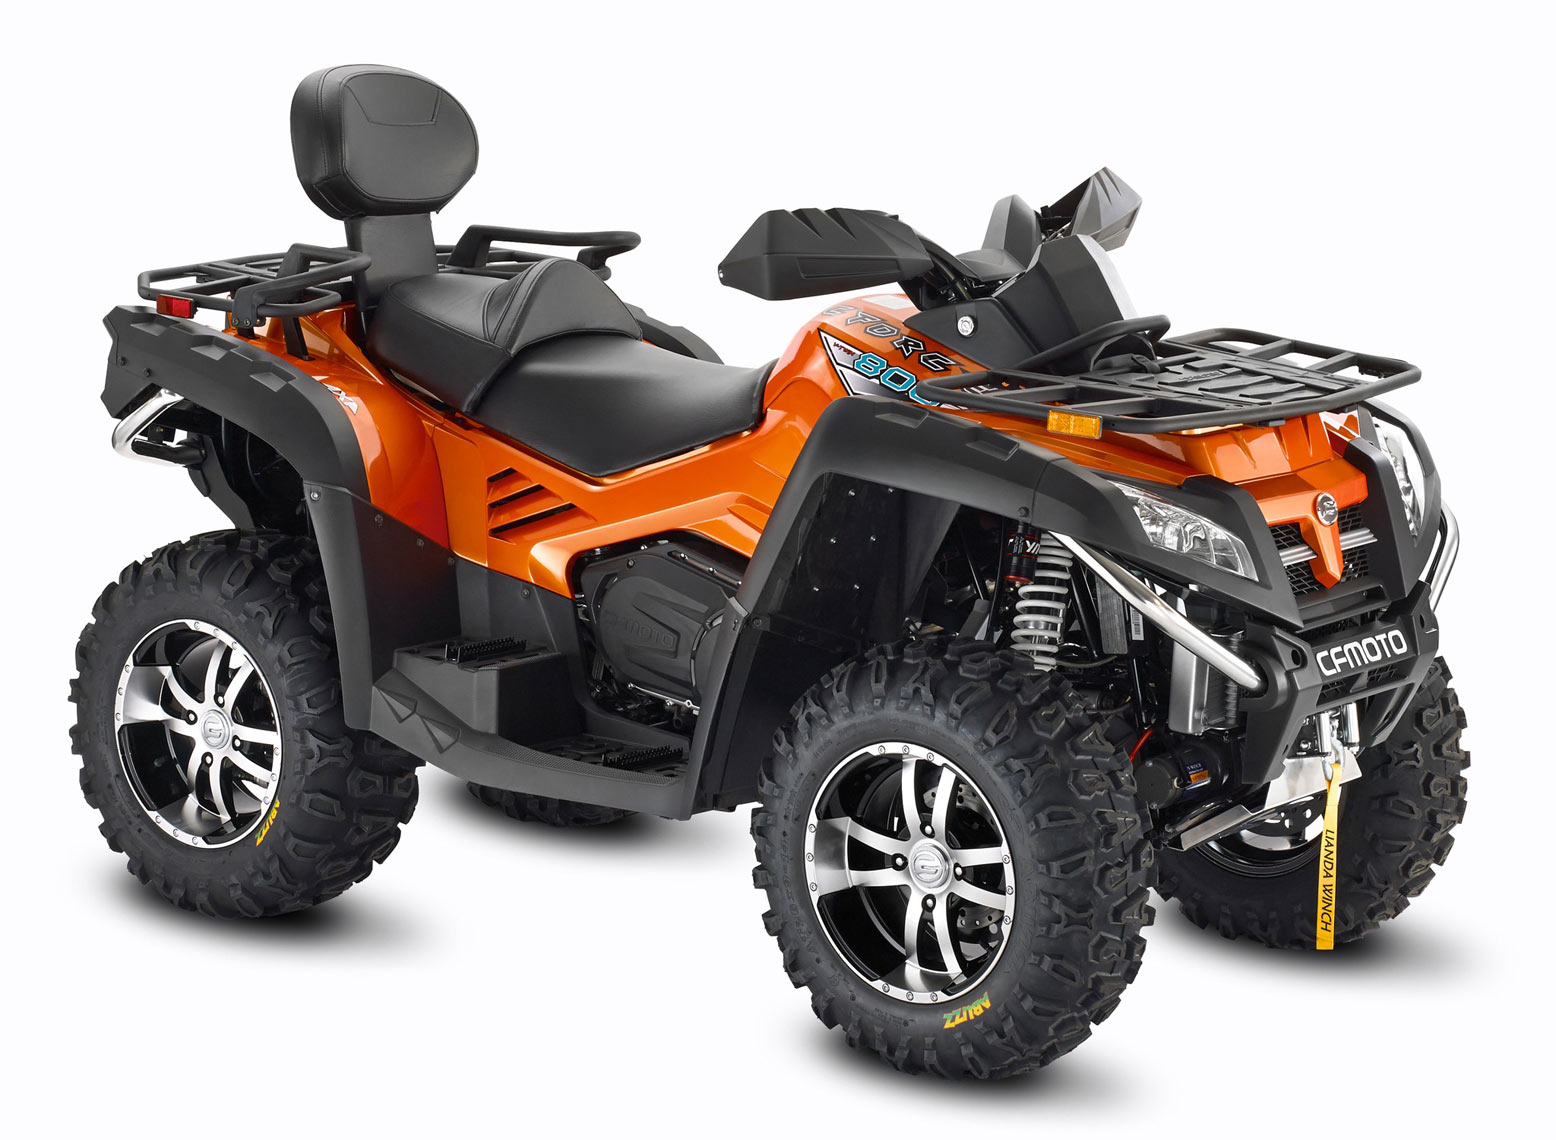 CFORCE-800/four wheeler/white backgound/product photography